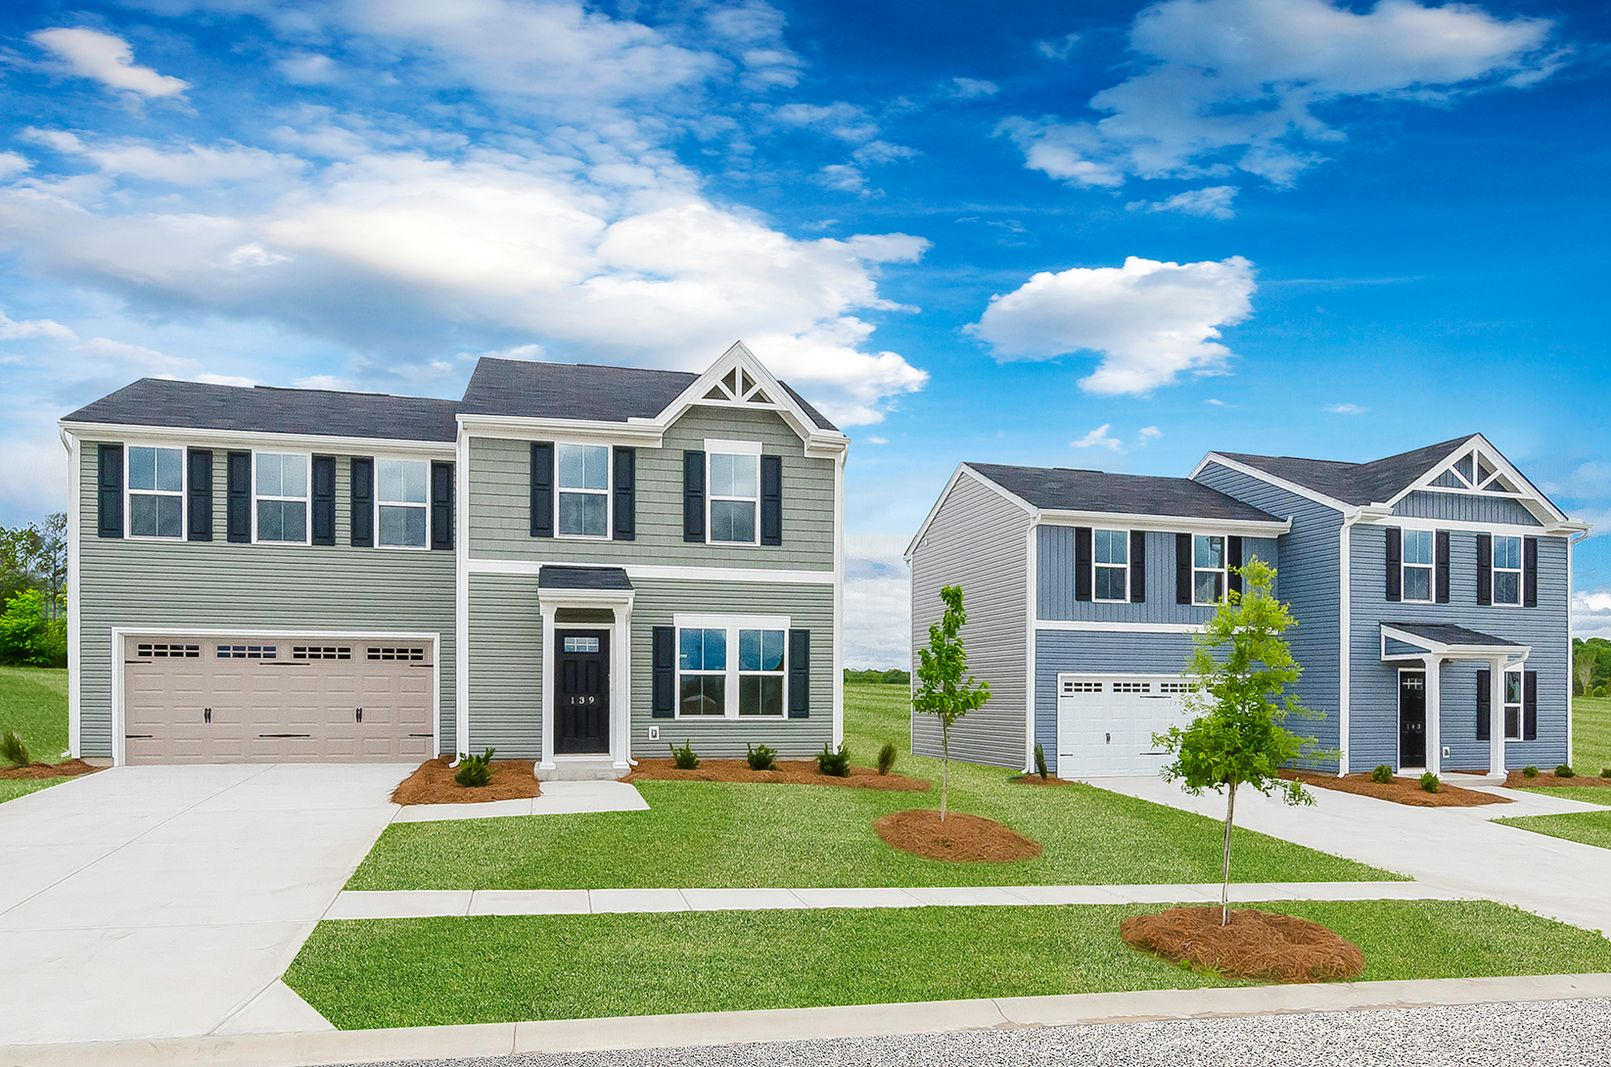 Limited Homesites are Being Released Every Month